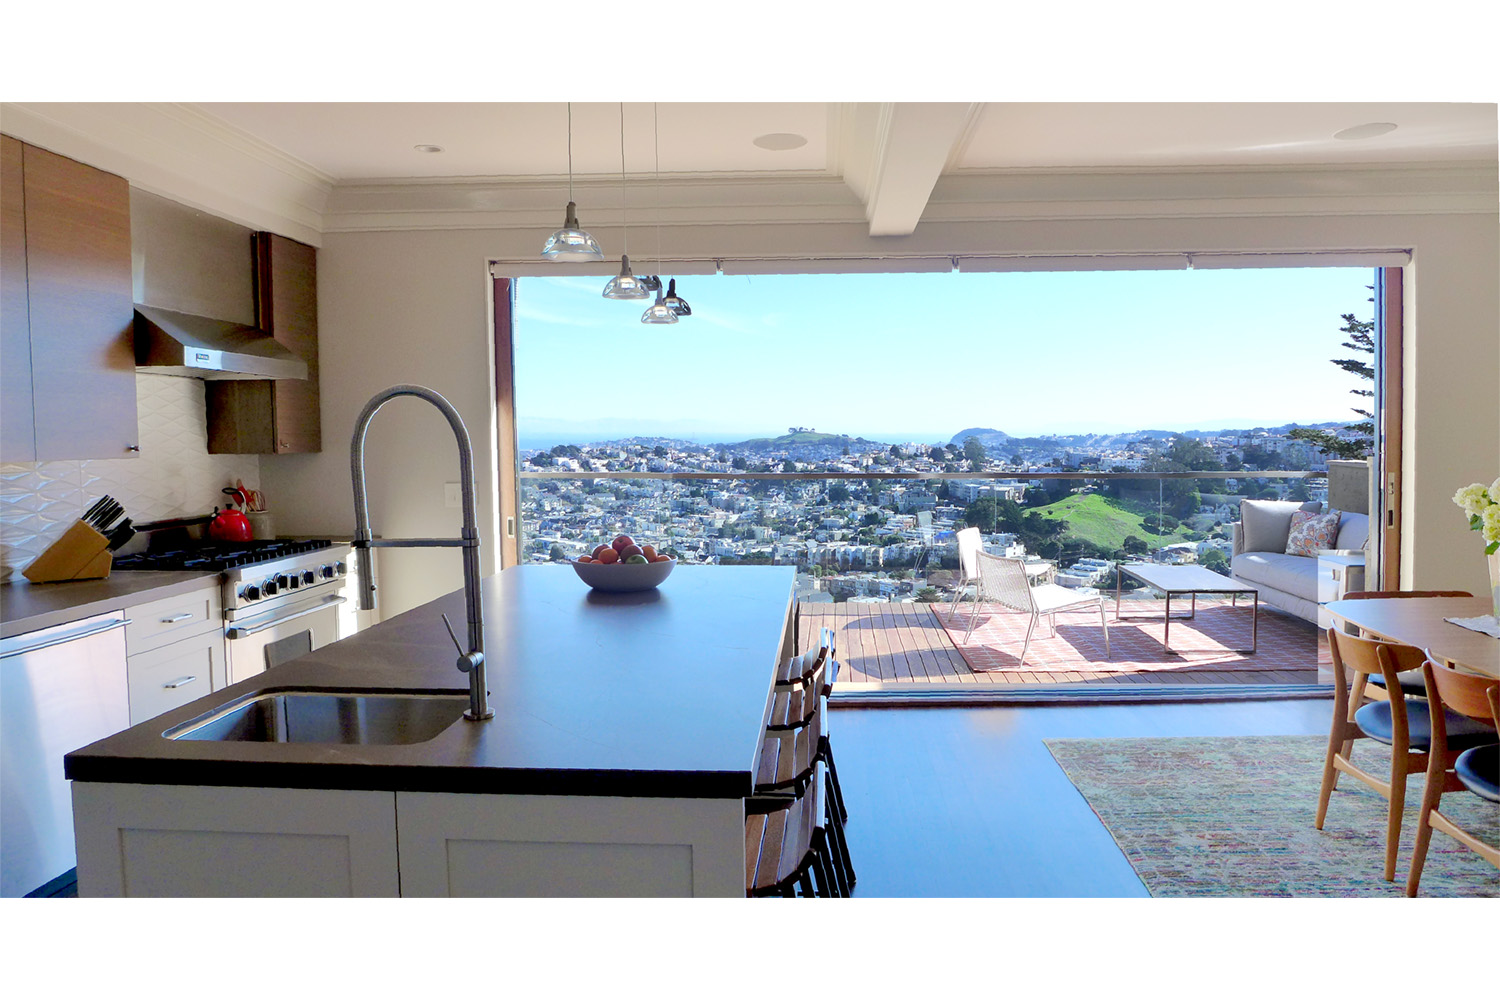 kitchen view out2_2.jpg